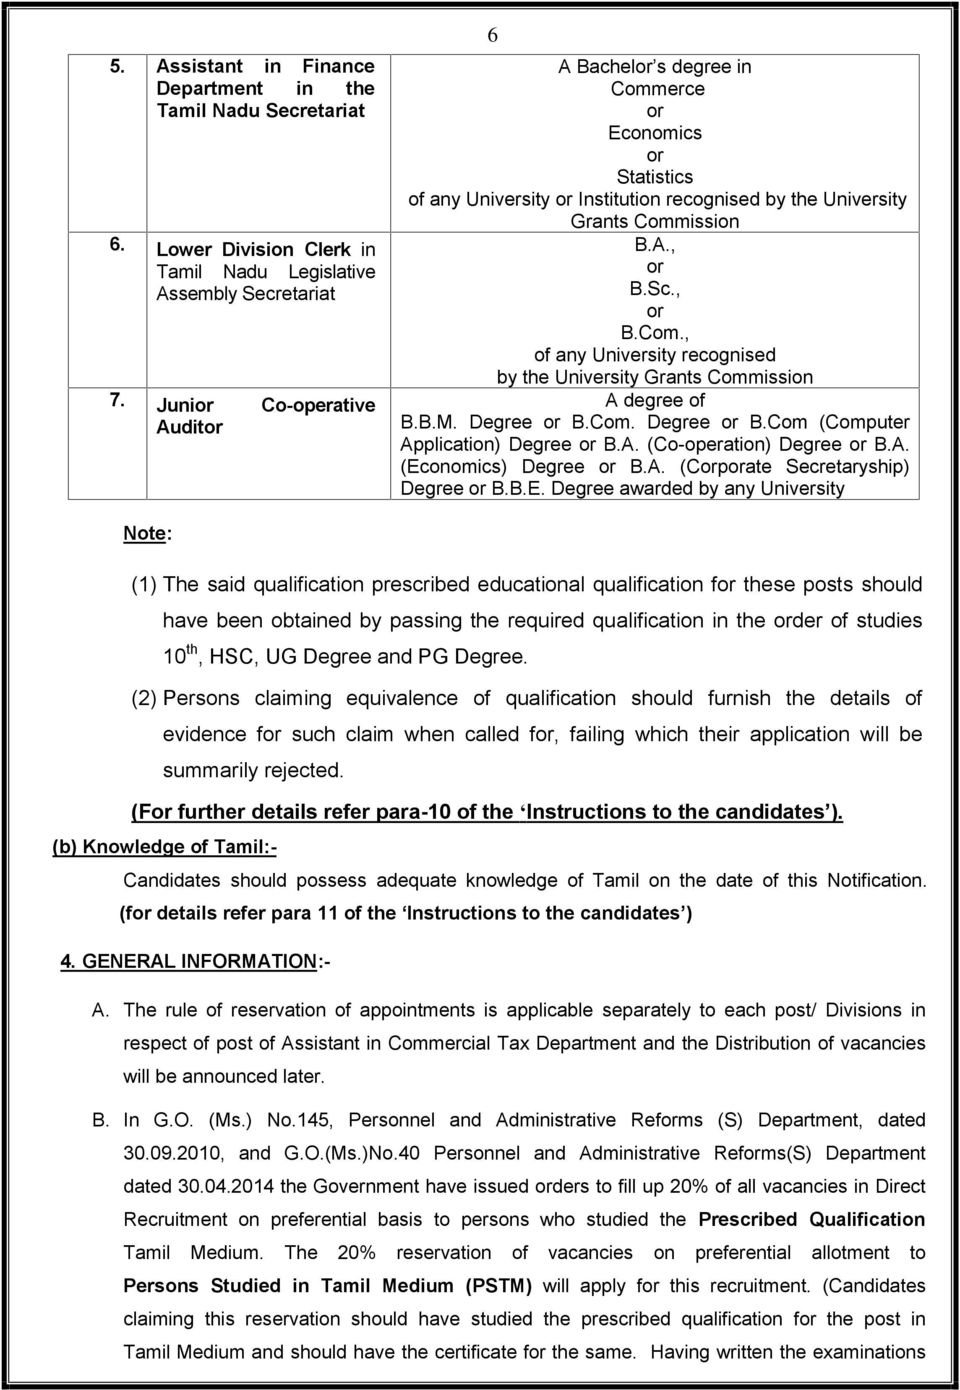 B.M. Degree or B.Com. Degree or B.Com (Computer Application) Degree or B.A. (Co-operation) Degree or B.A. (Ec